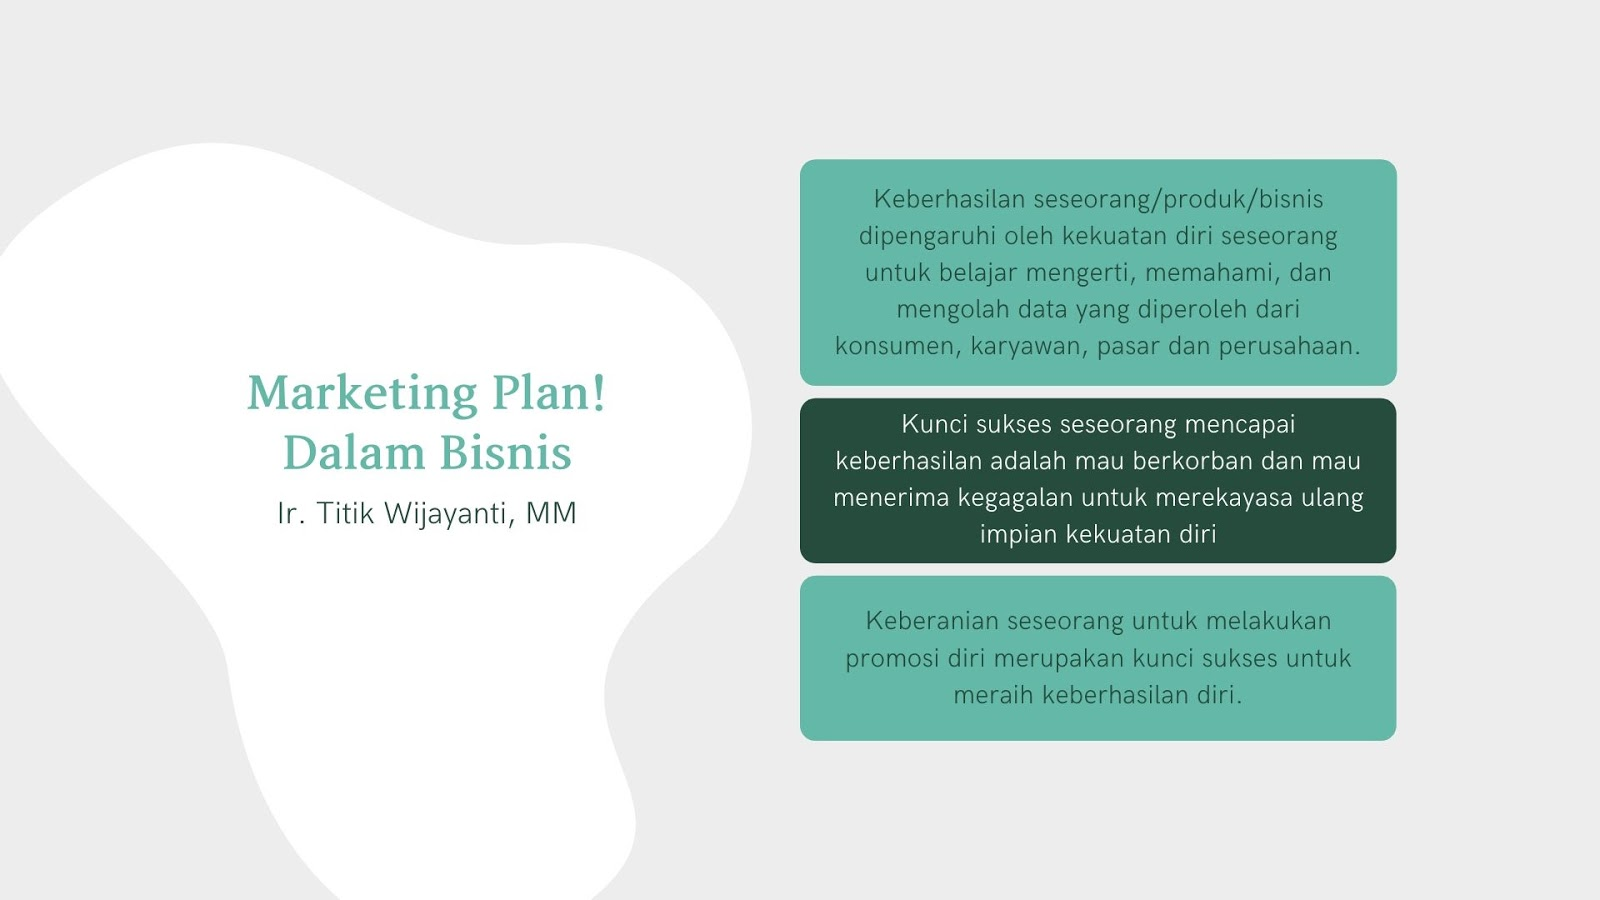 Review Buku: Marketing Plan! Dalam Bisnis.